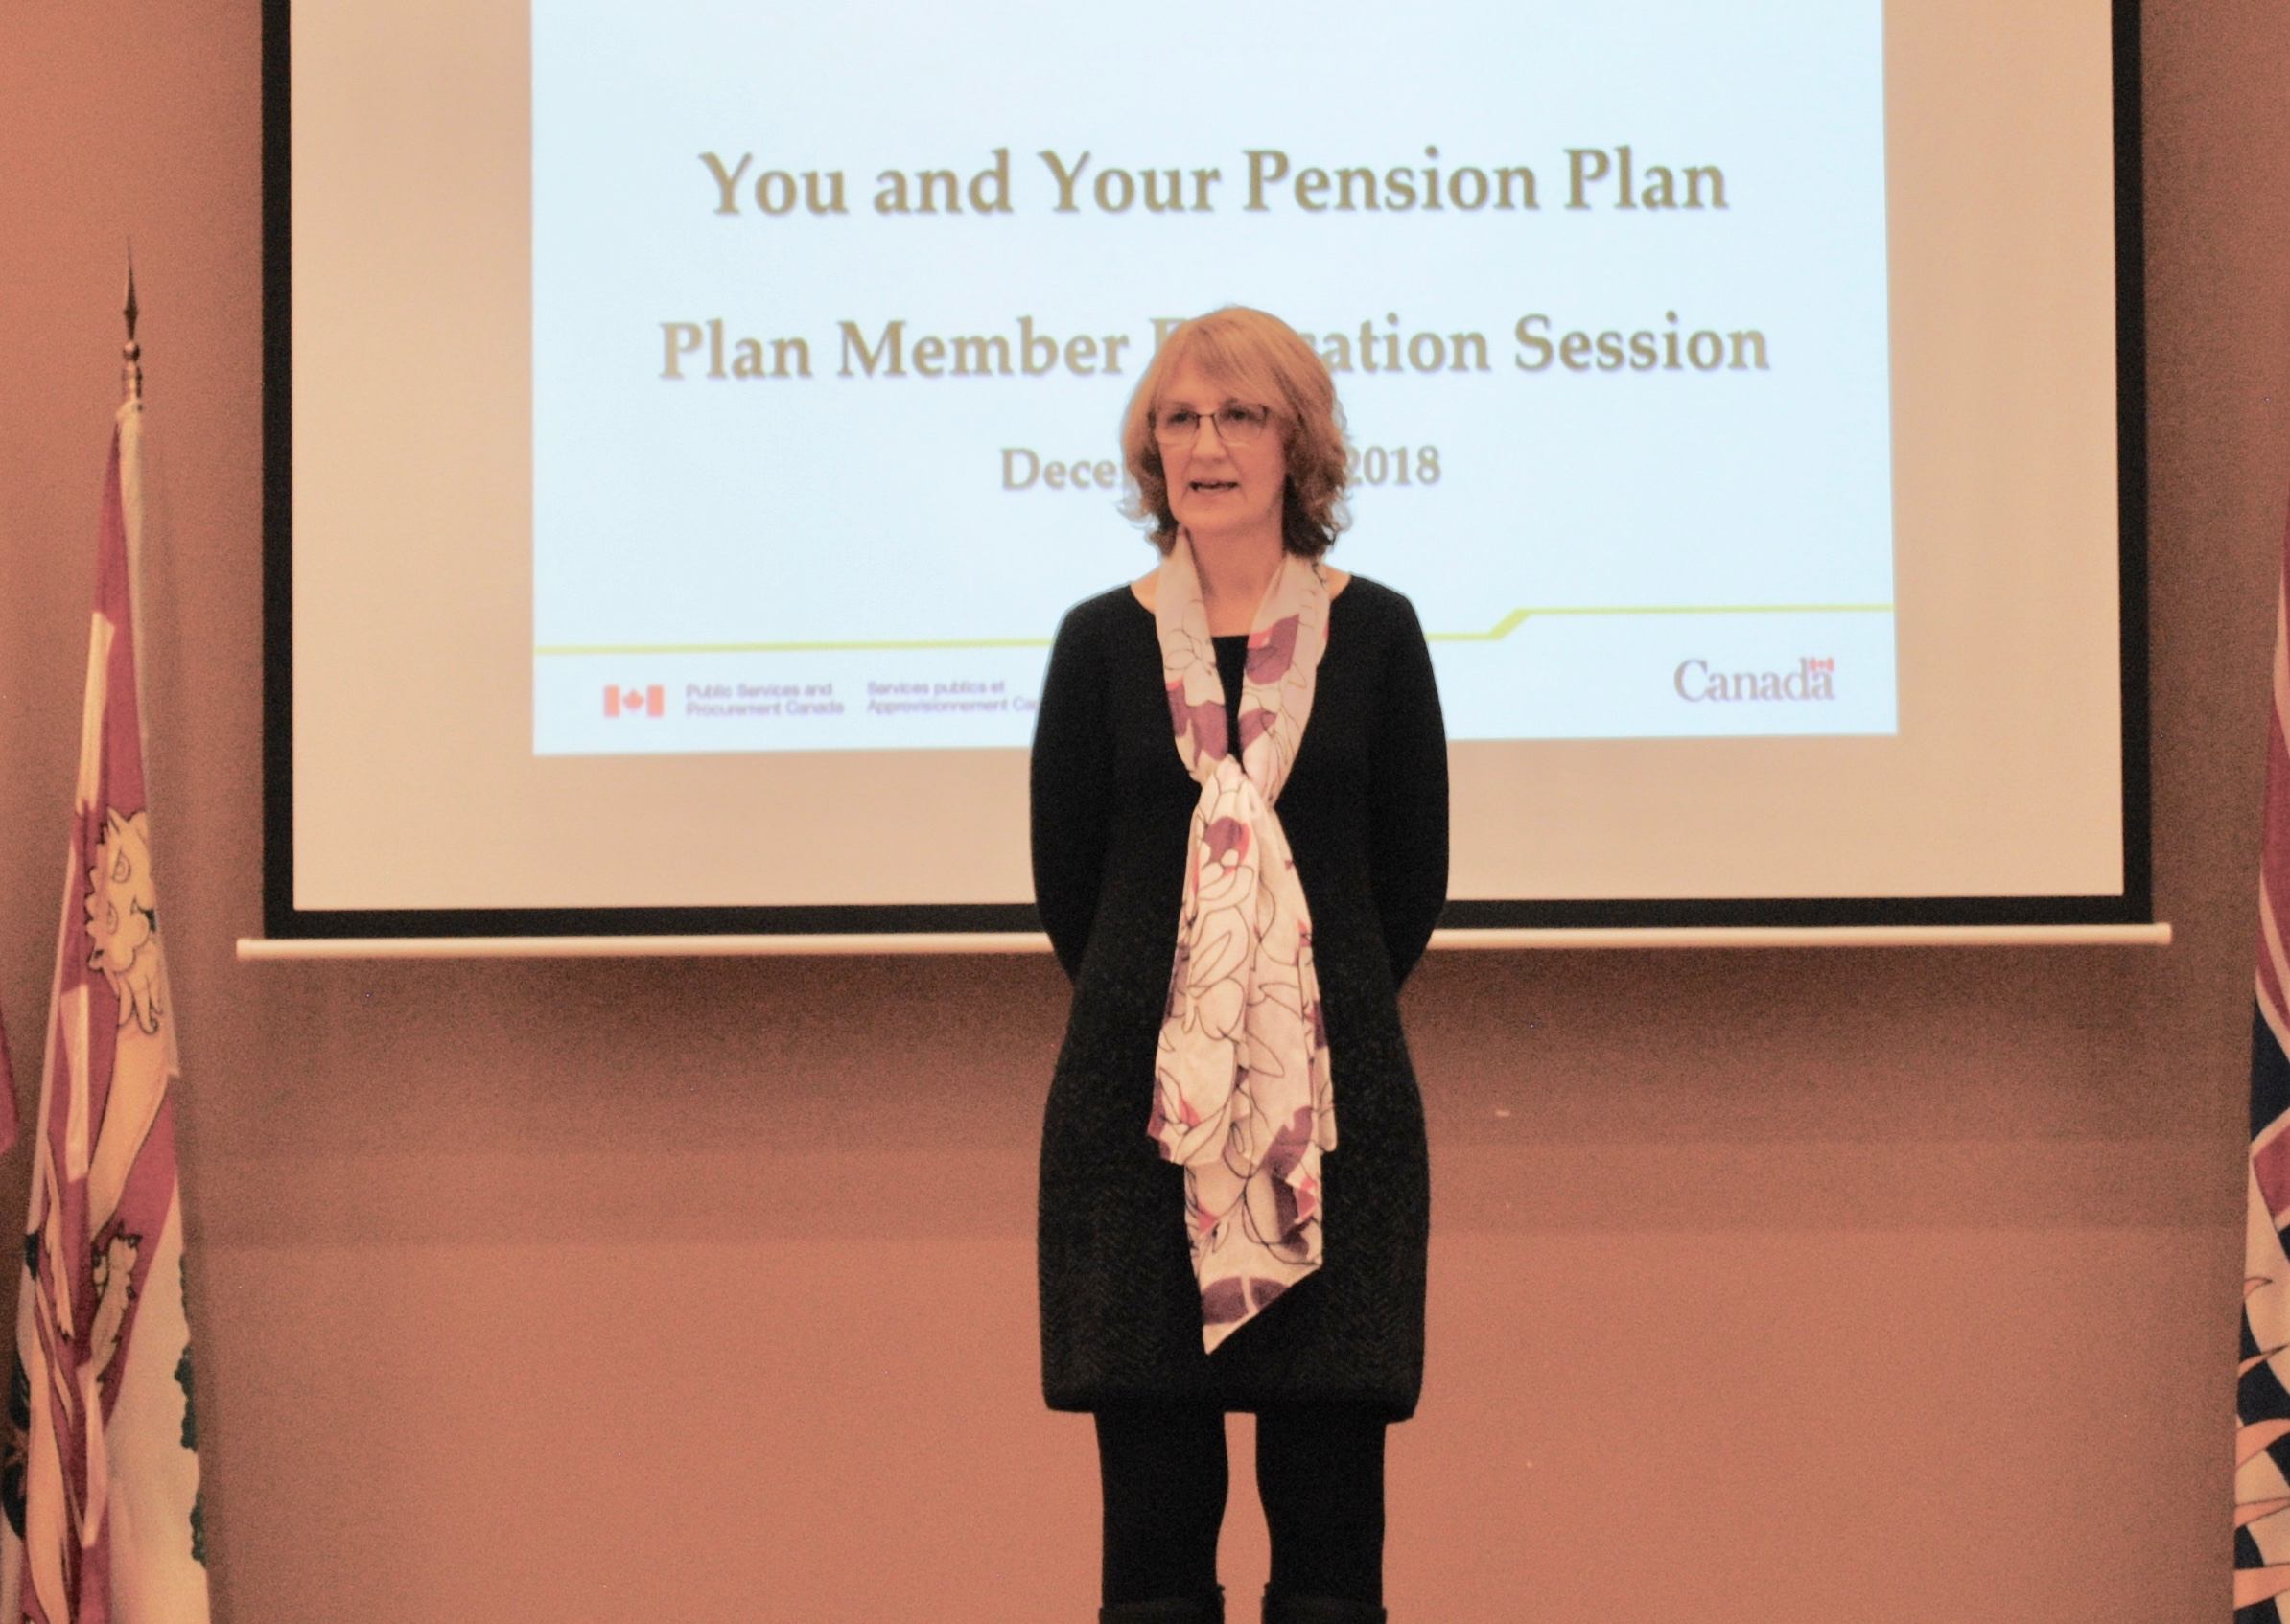 Melody Walz, Presenter for the Pubic Service Pension Plan